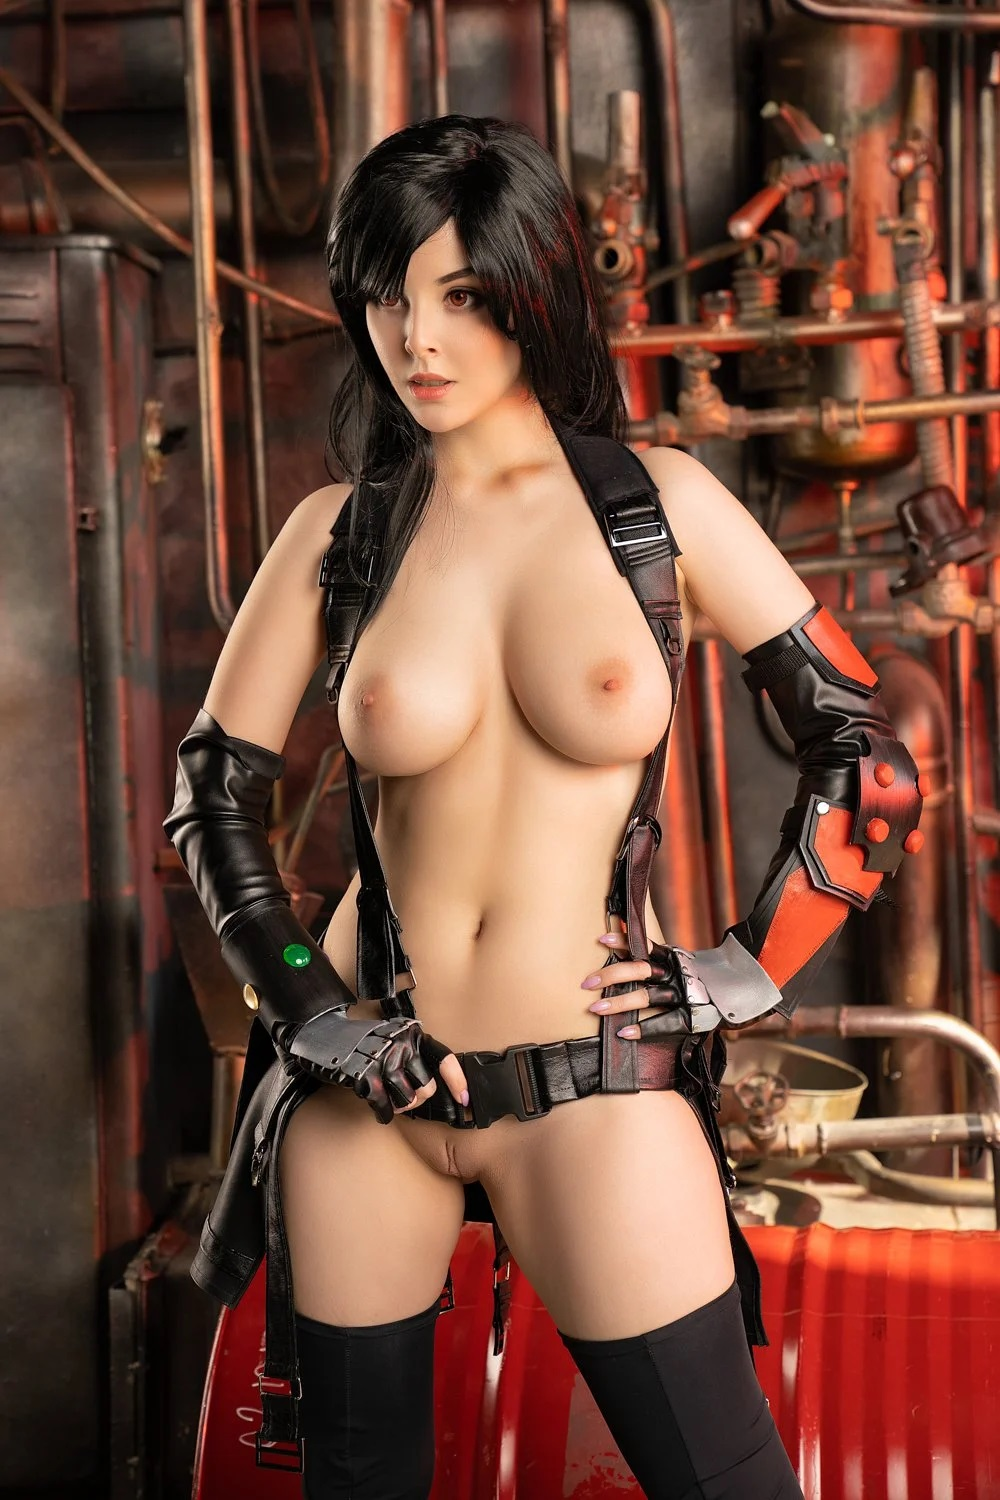 Helly von Valentine as Tifa Lockhart (Final Fantasy VII) full frontal nude